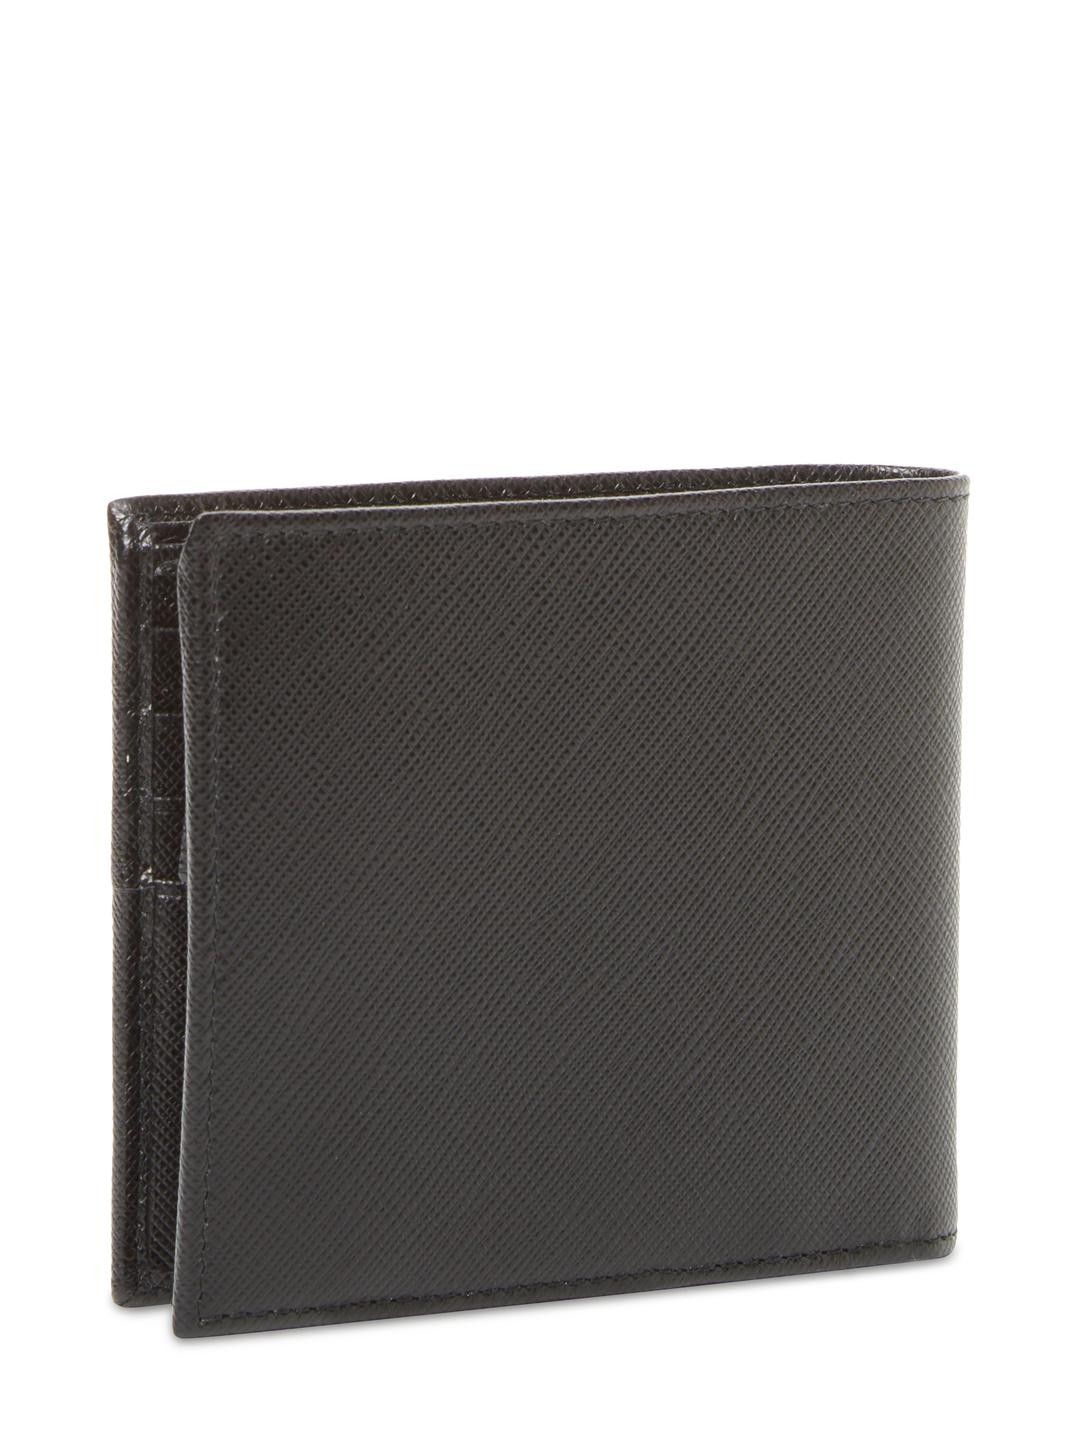 a3bd9593a137 ... inexpensive prada black textured leather bifold wallet for men lyst.  view fullscreen cd607 f1ced